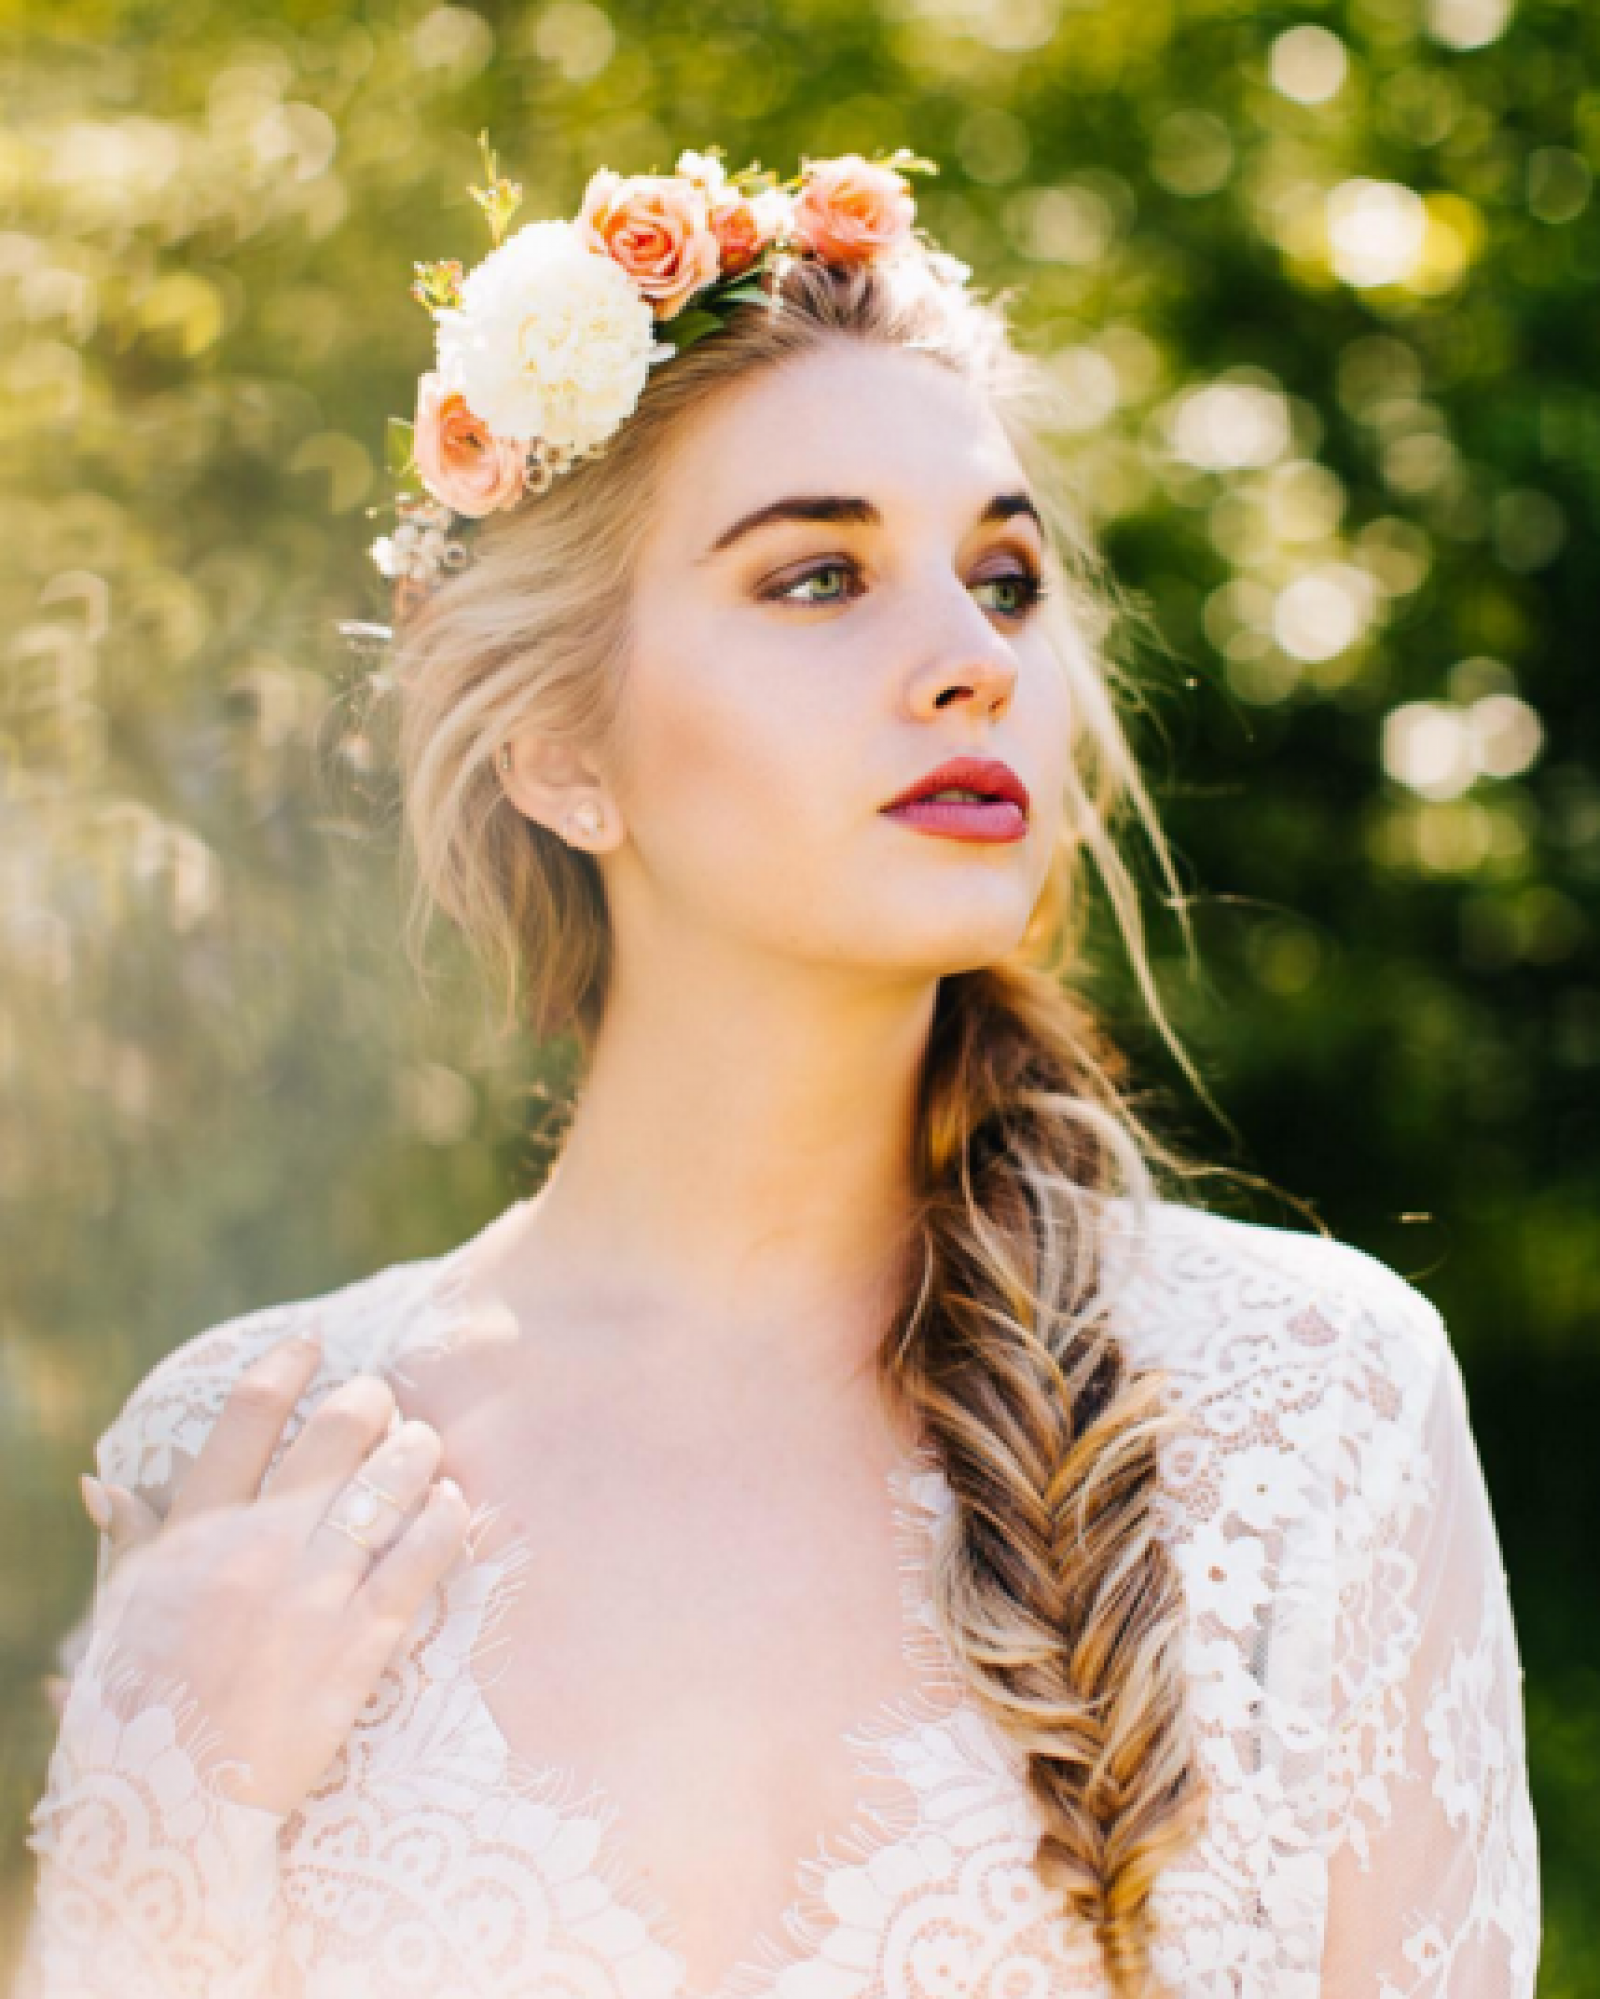 Wedding Hairstyle Crown: Stunning Bride With Fishtail Braid And Flower Crown